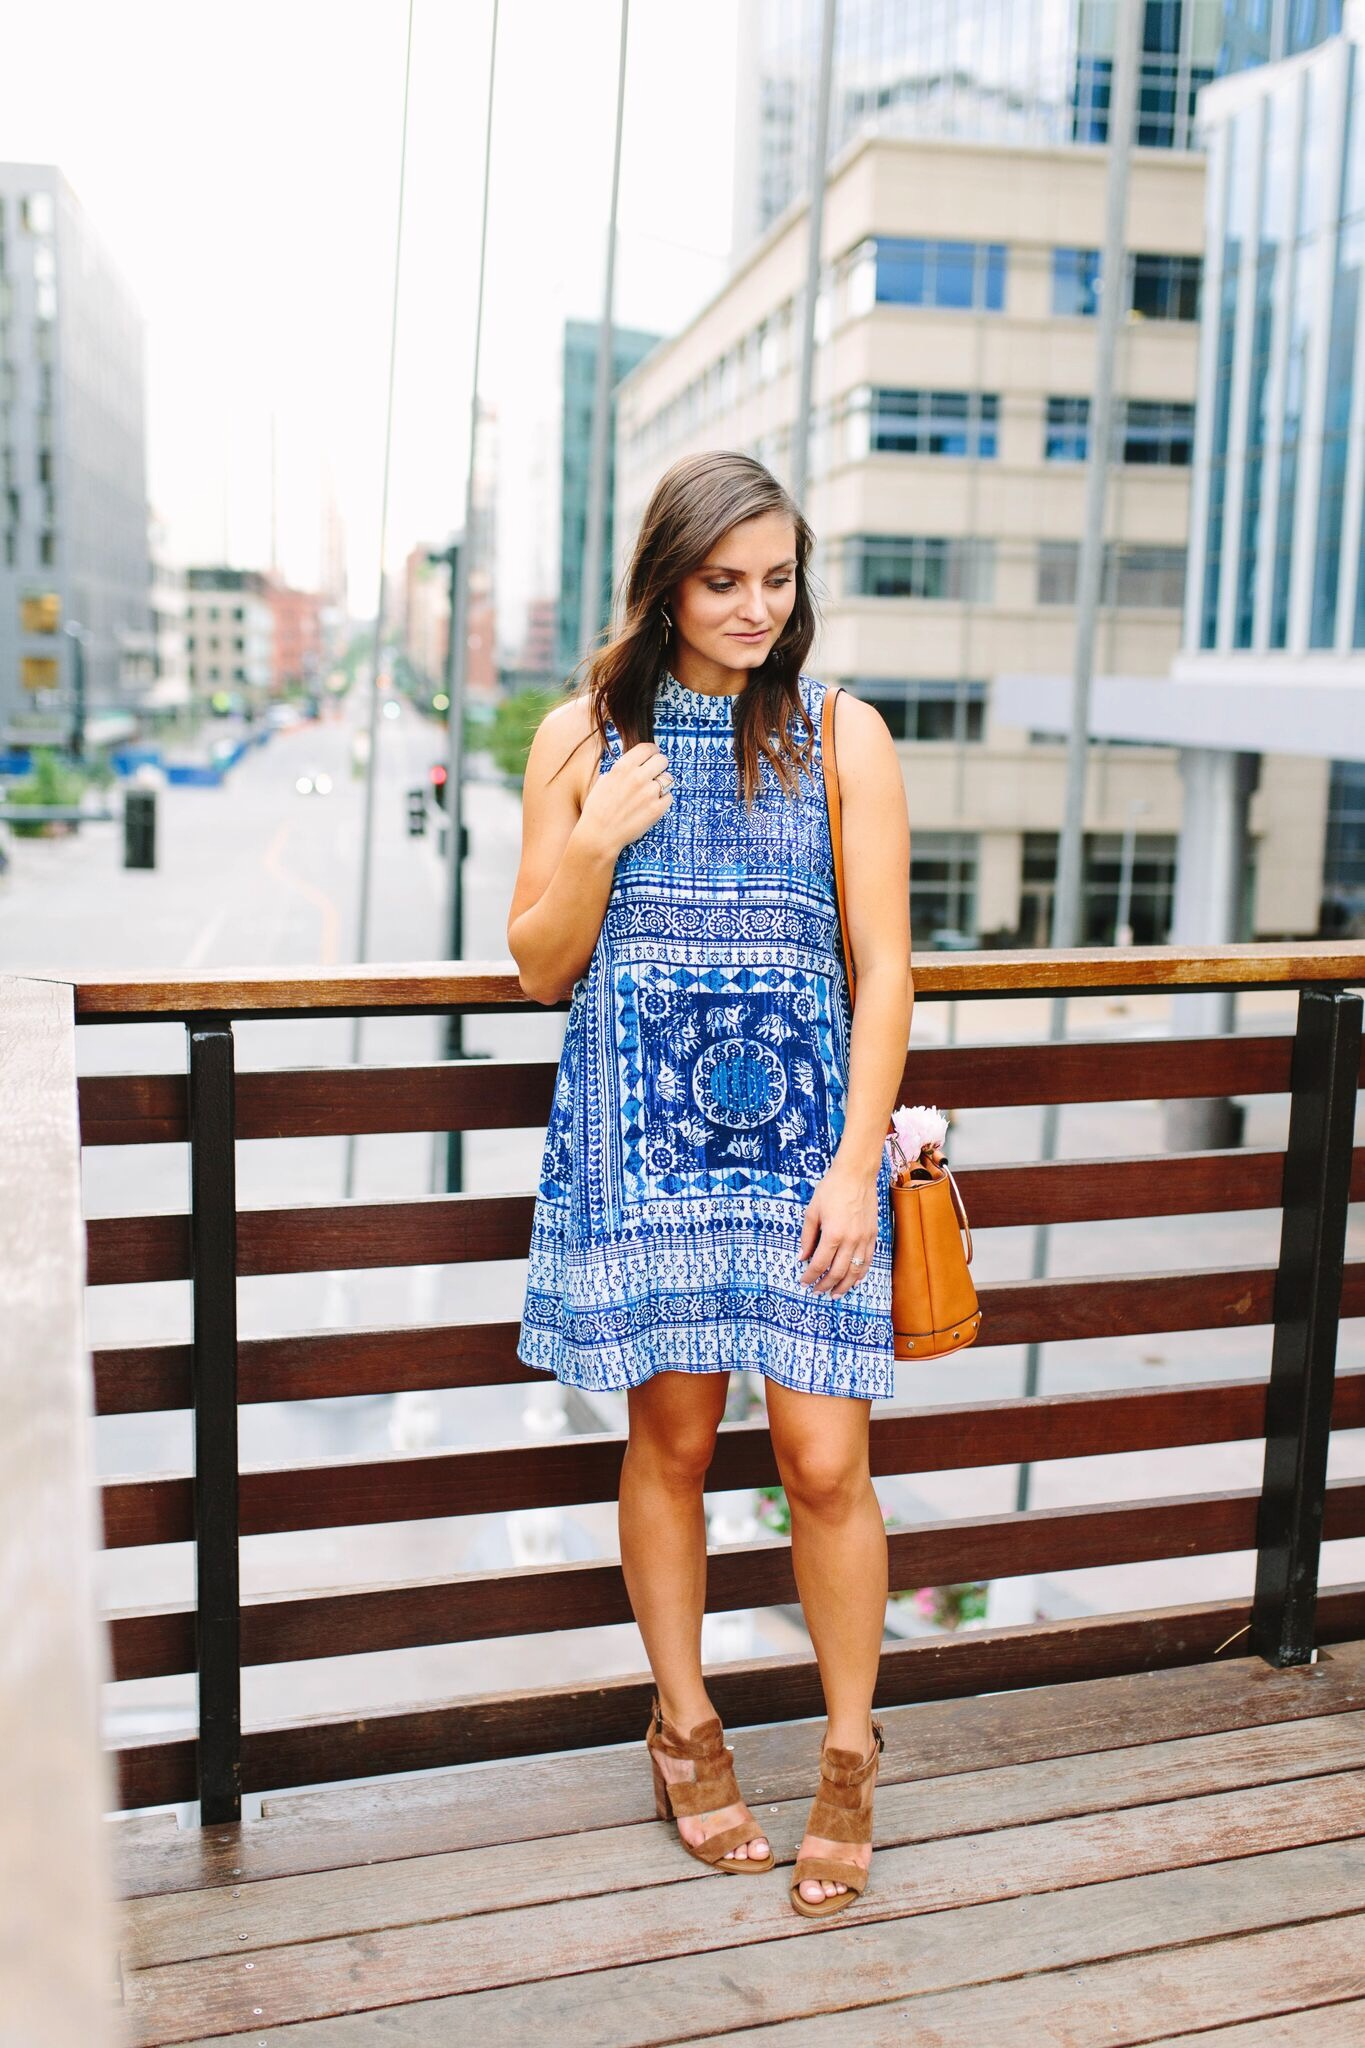 "<img src=""summer-outfit-inspo.jpg"" alt =""hinge-cora-sandal-o-ring-purse-blue-tank-dress-summer-outfit-inspiration-a-look-behind-the-scenes-of-fashon-blogging"""